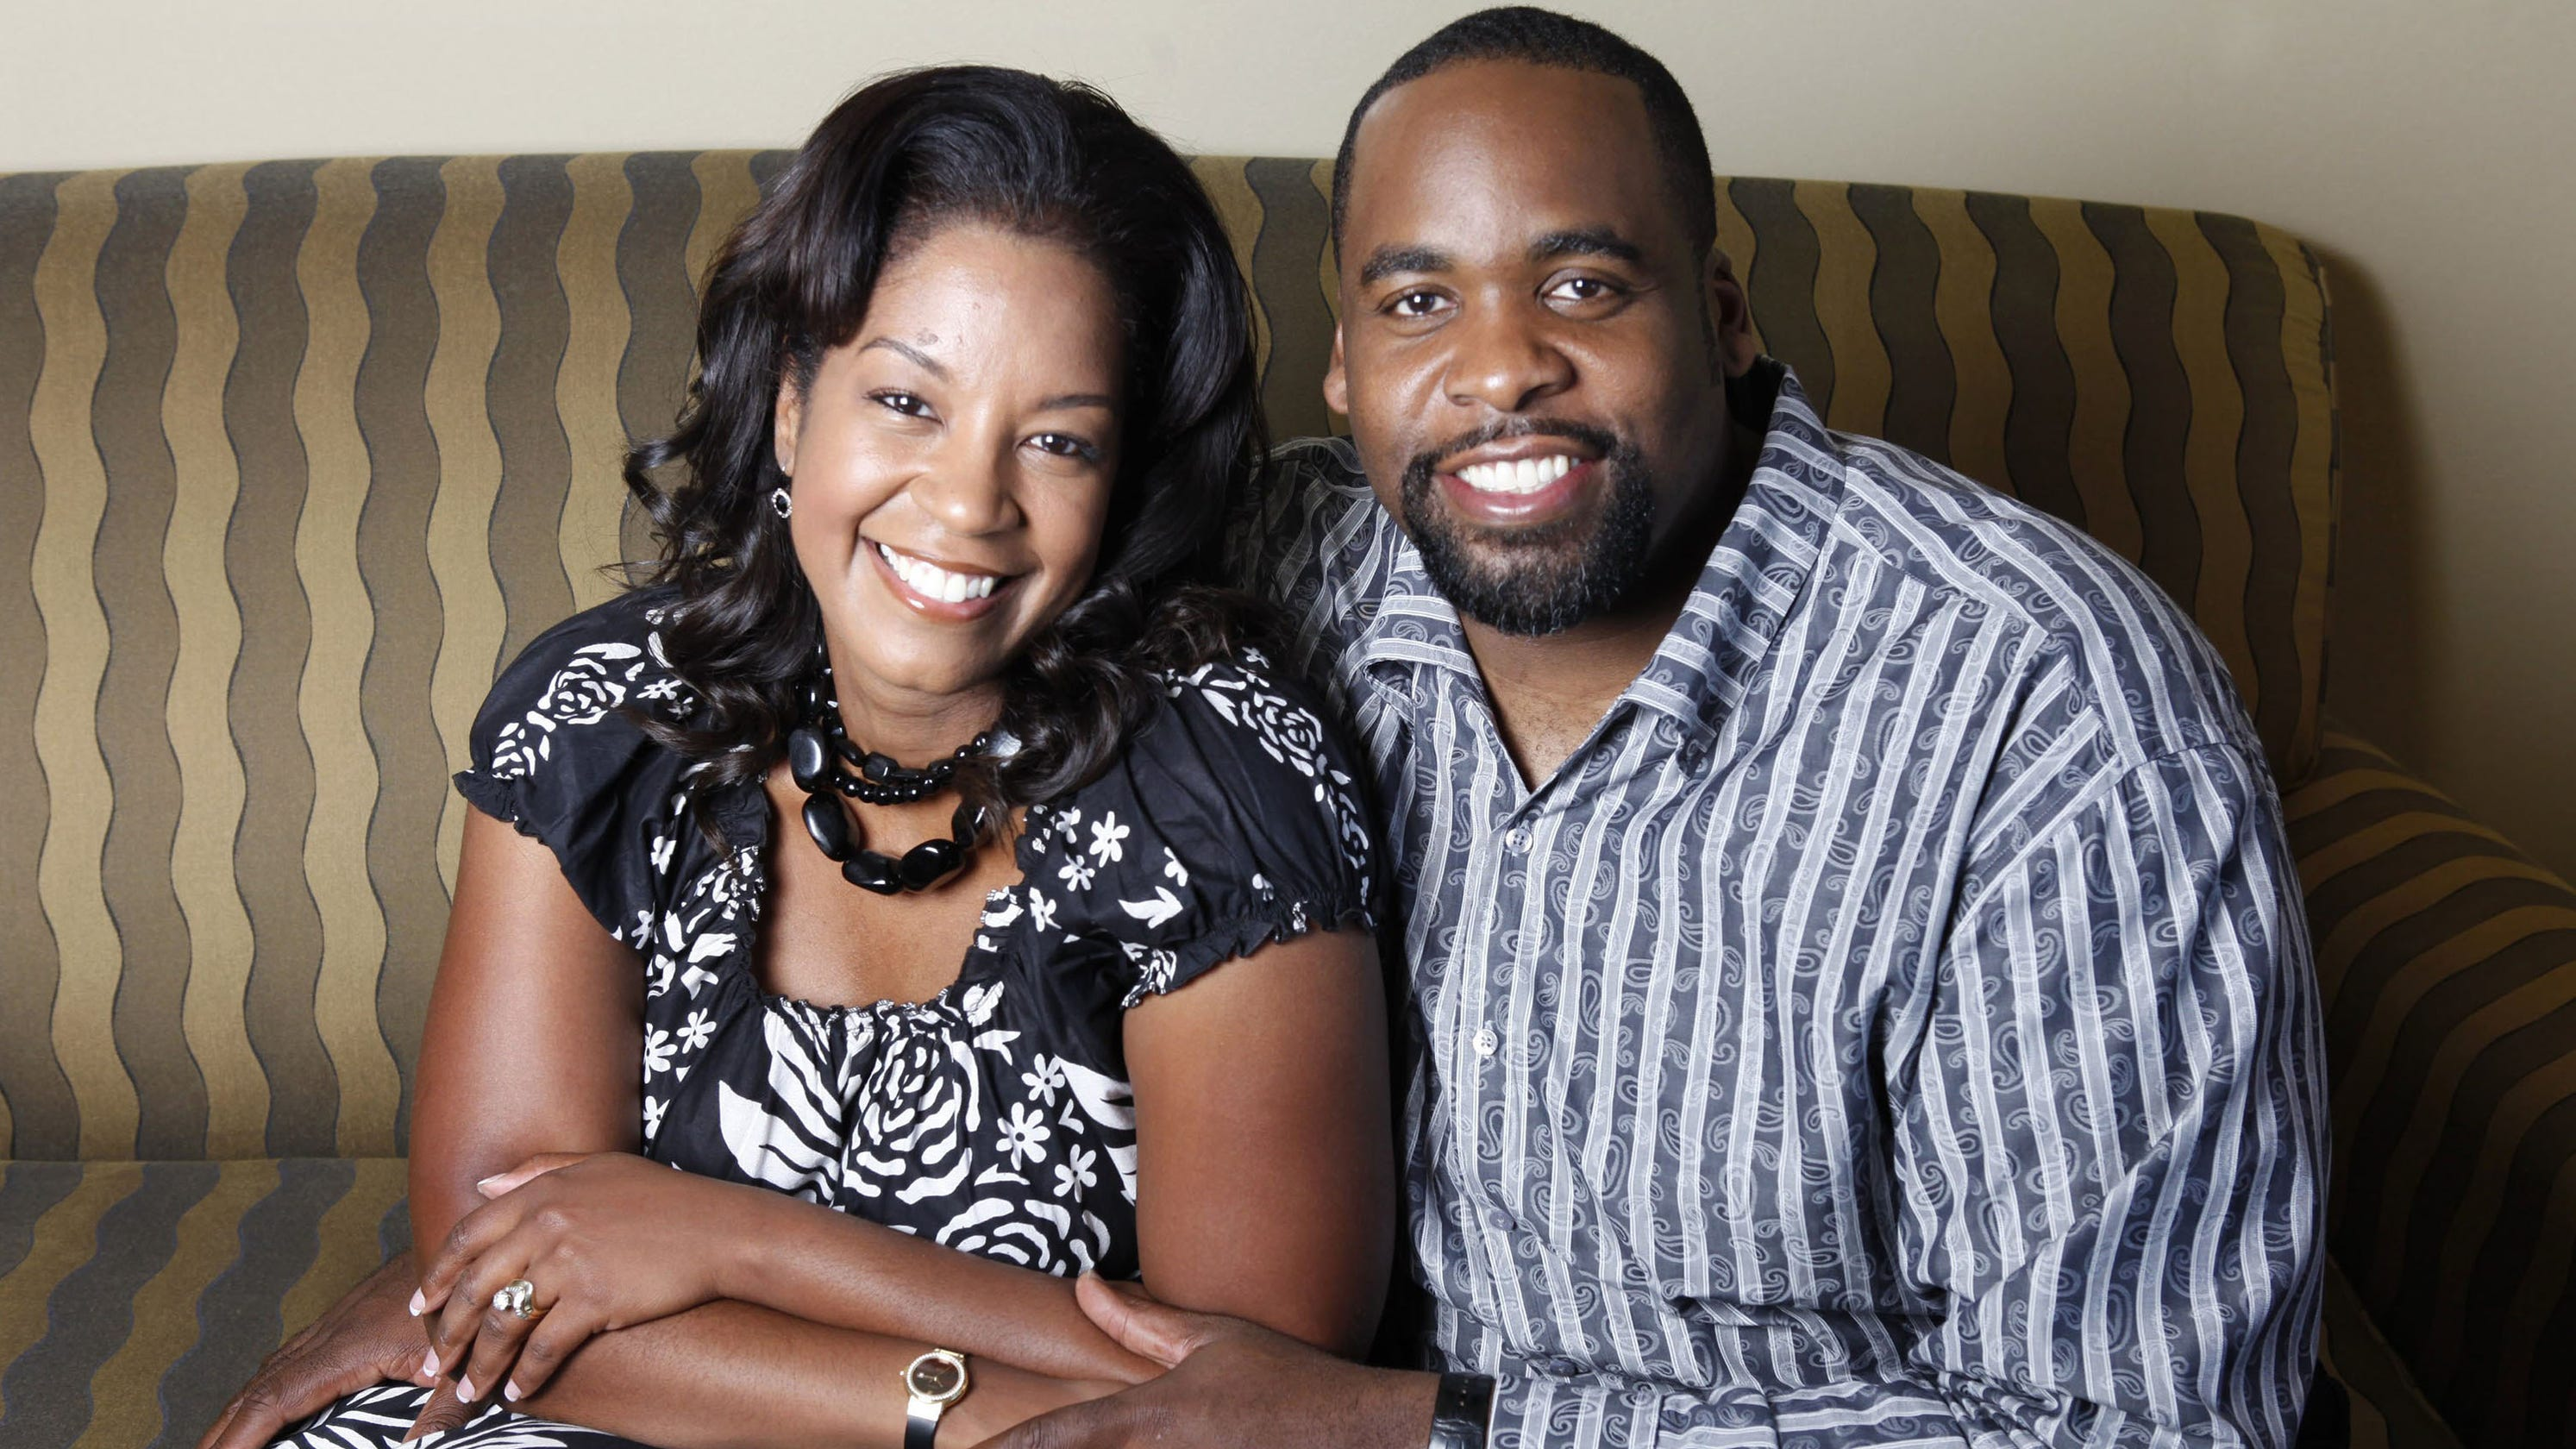 Kwame Kilpatrick reveals divorce on Facebook  'I lost my marriage'